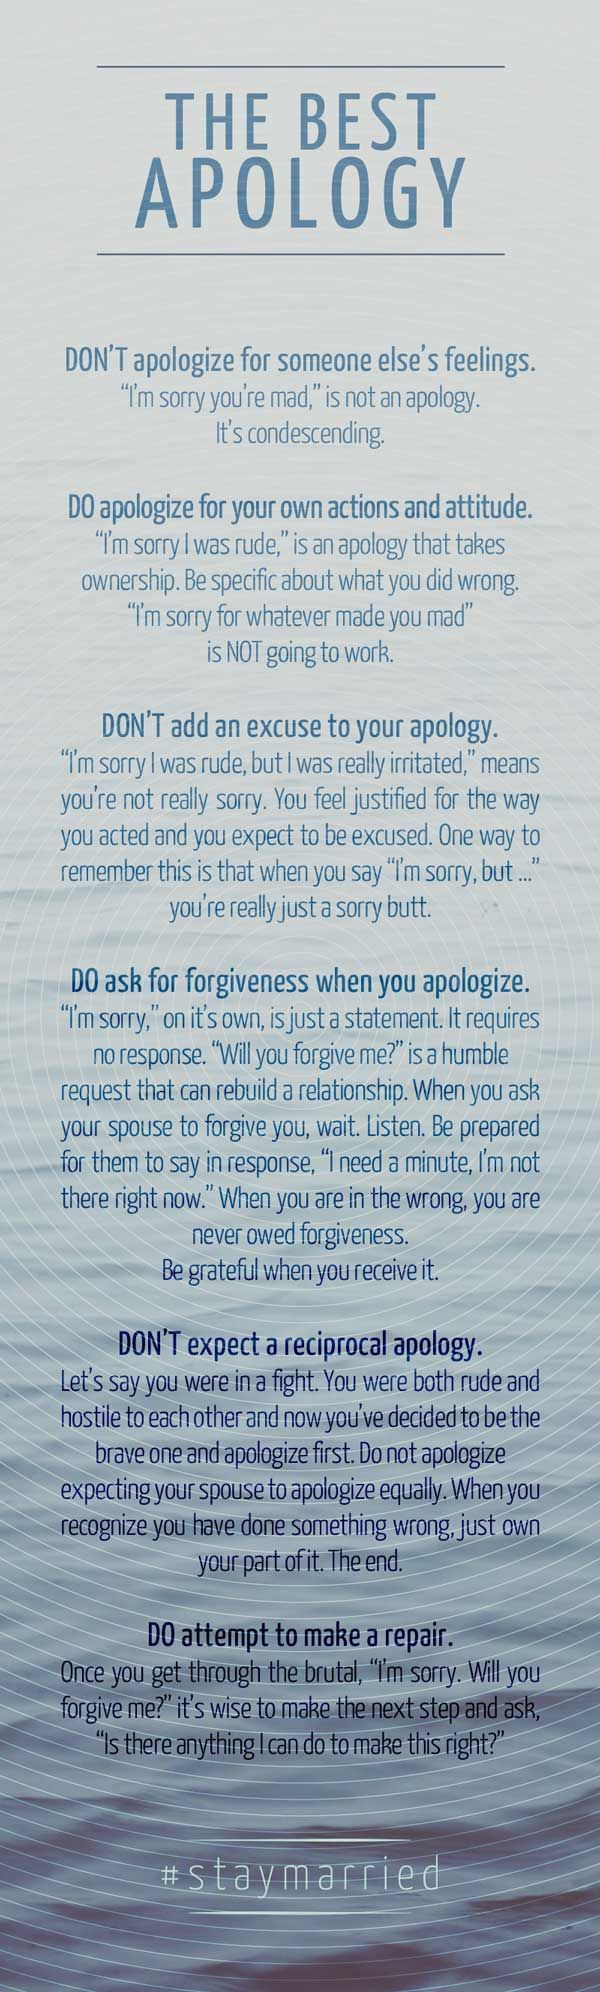 The Best Apology – How to Say Sorry Like You Mean It | #staymarried